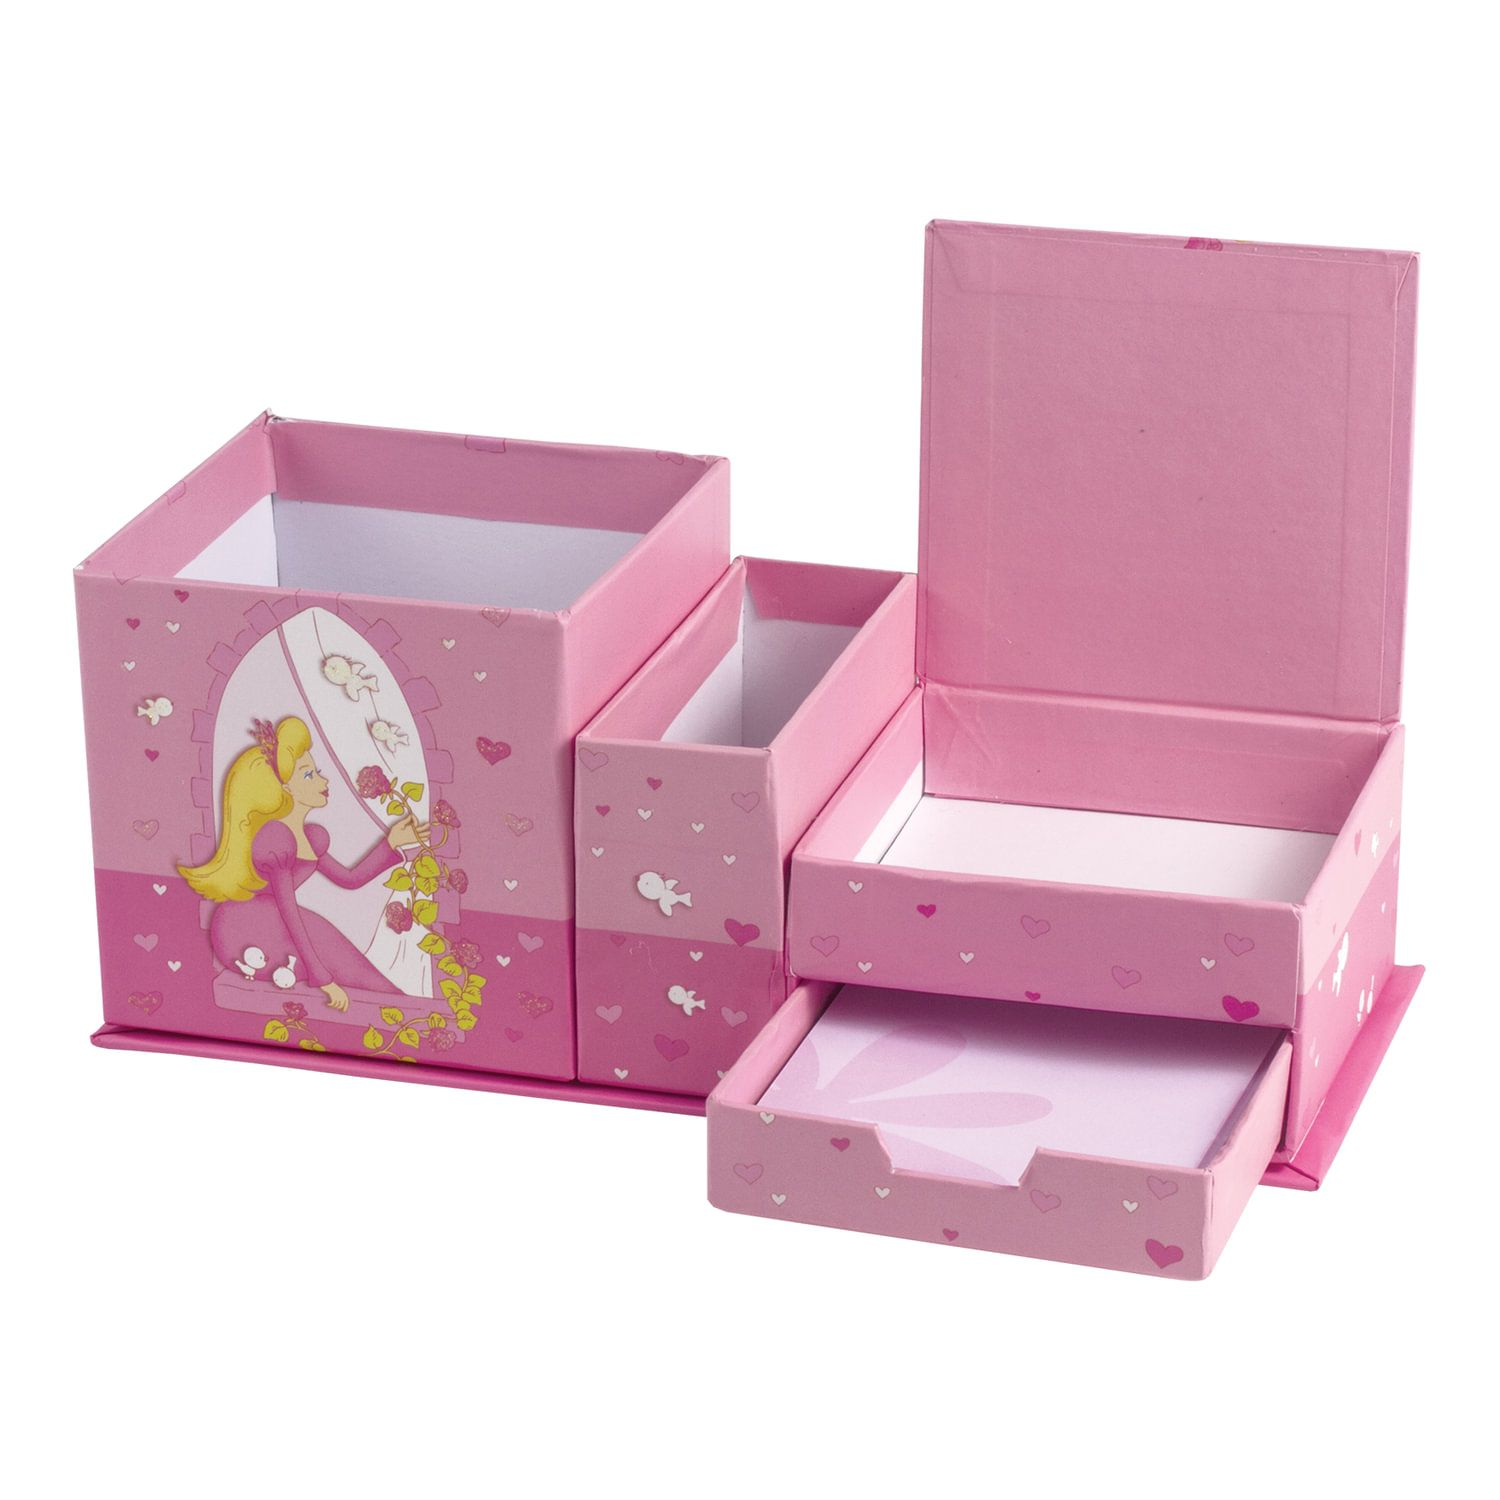 """BRAUBERG / Notepad """"Princess"""" SMALL FORMAT 56 sheets A6, 110x150 mm, hardcover, photo frame + writing block, gift wrapping, line"""